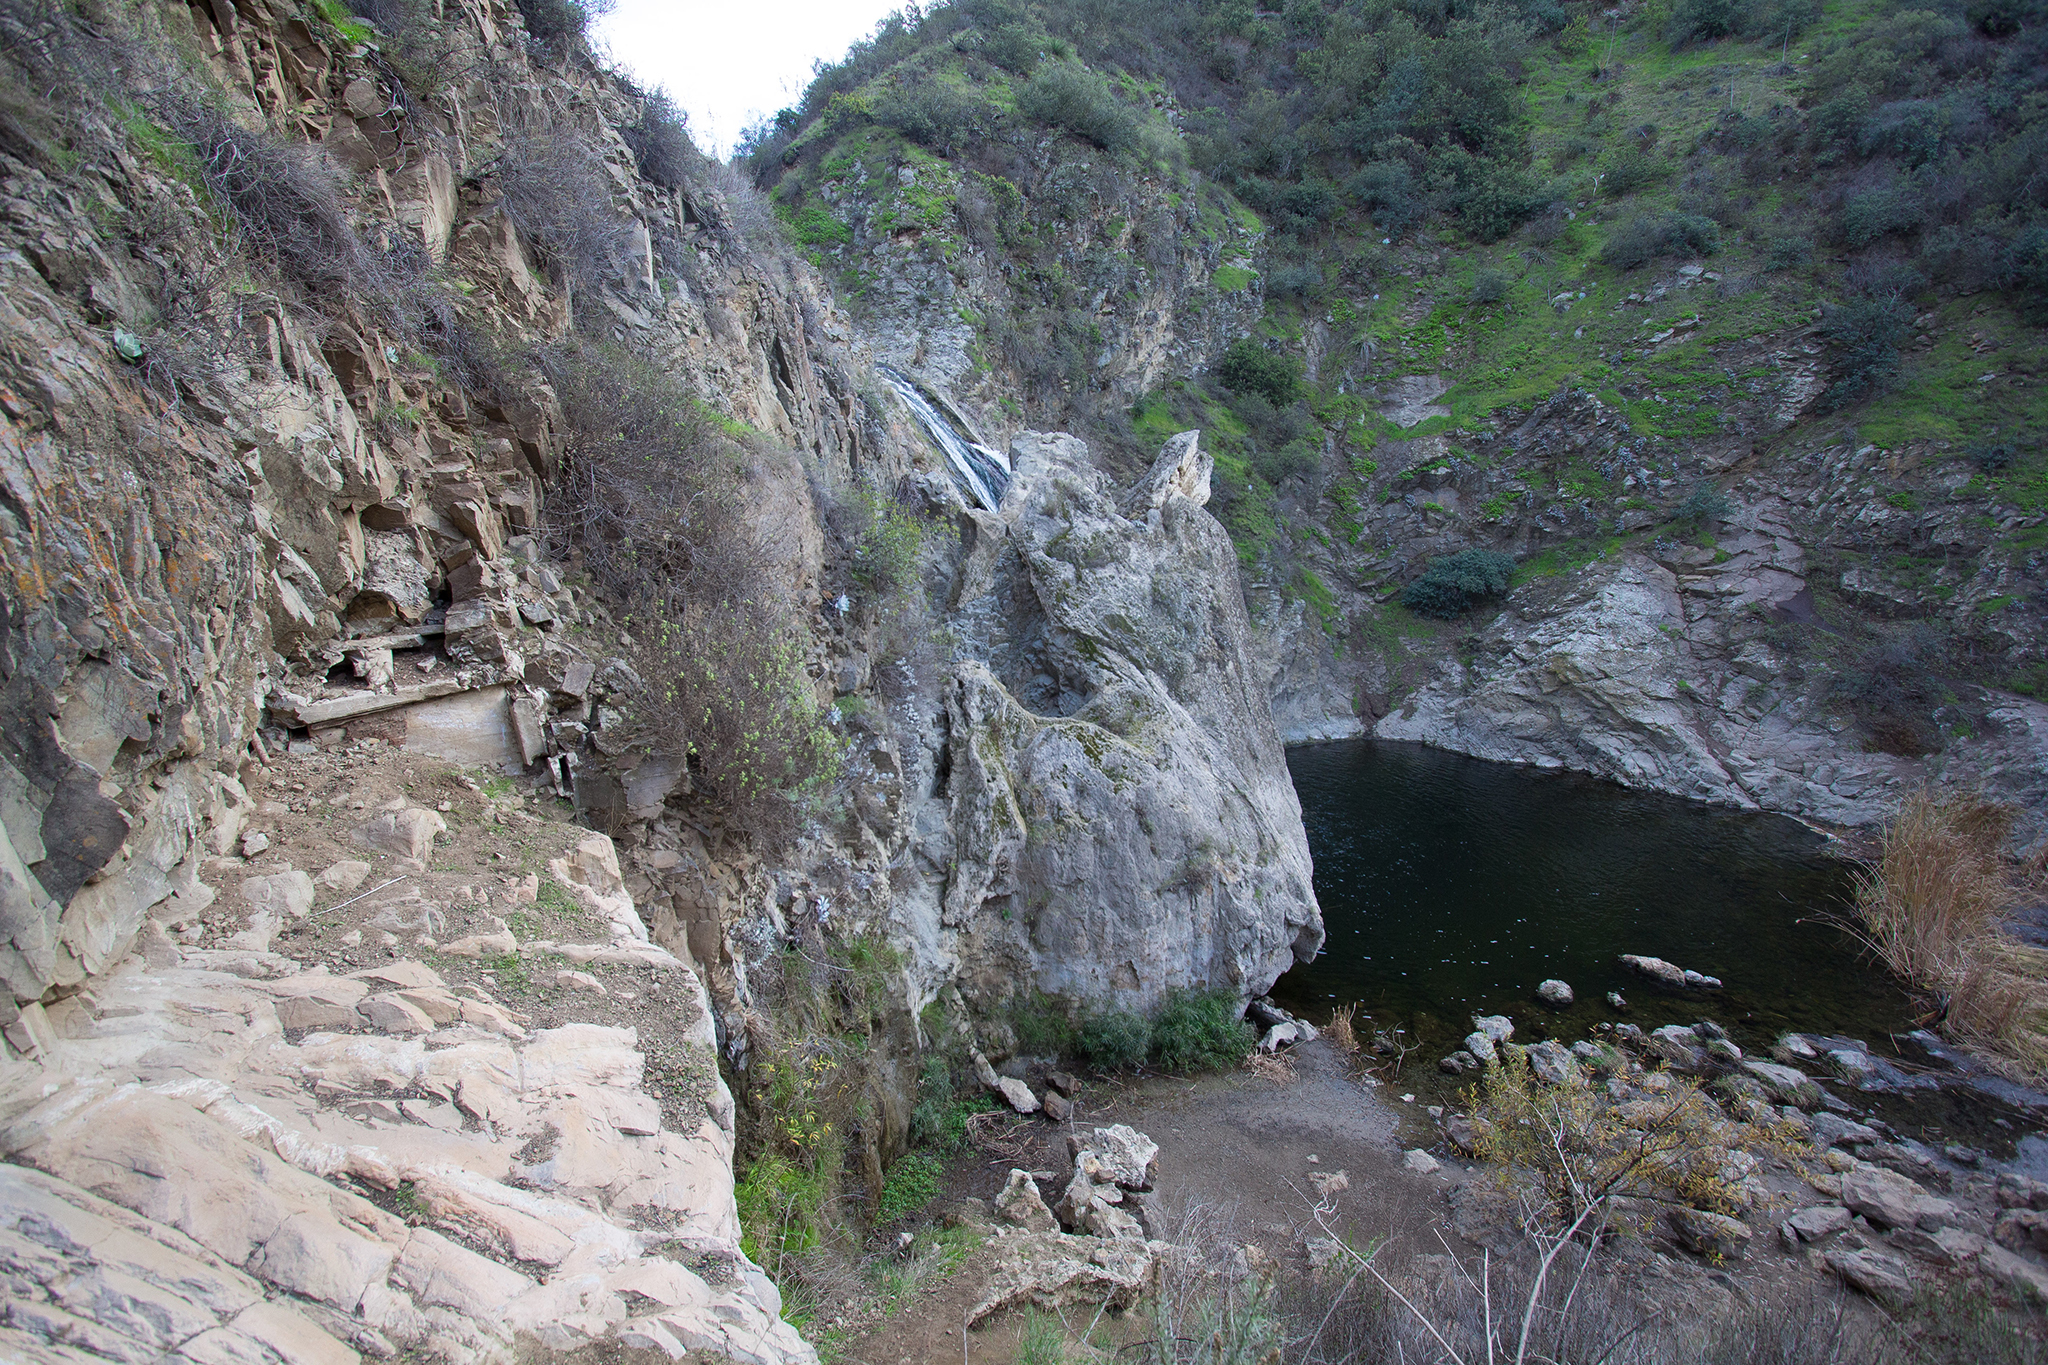 Paradise Falls in Wildwood Park, Thousand Oaks